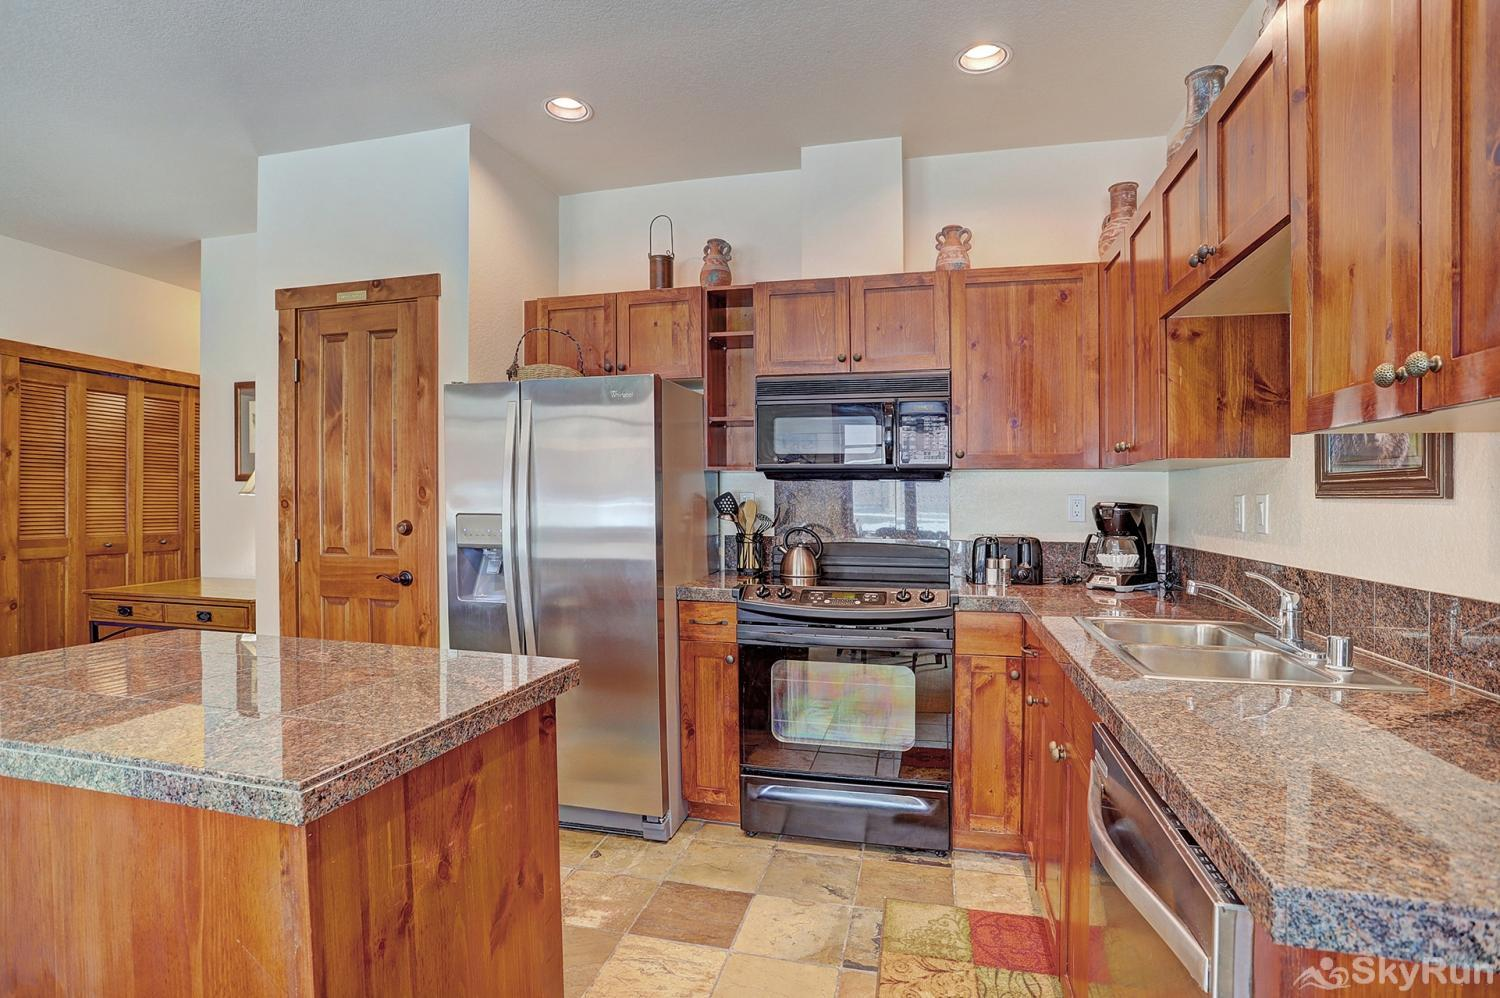 Main Street Station 2203 Prepare tasty home cooked meals with the convenience of a fully equipped kitchen